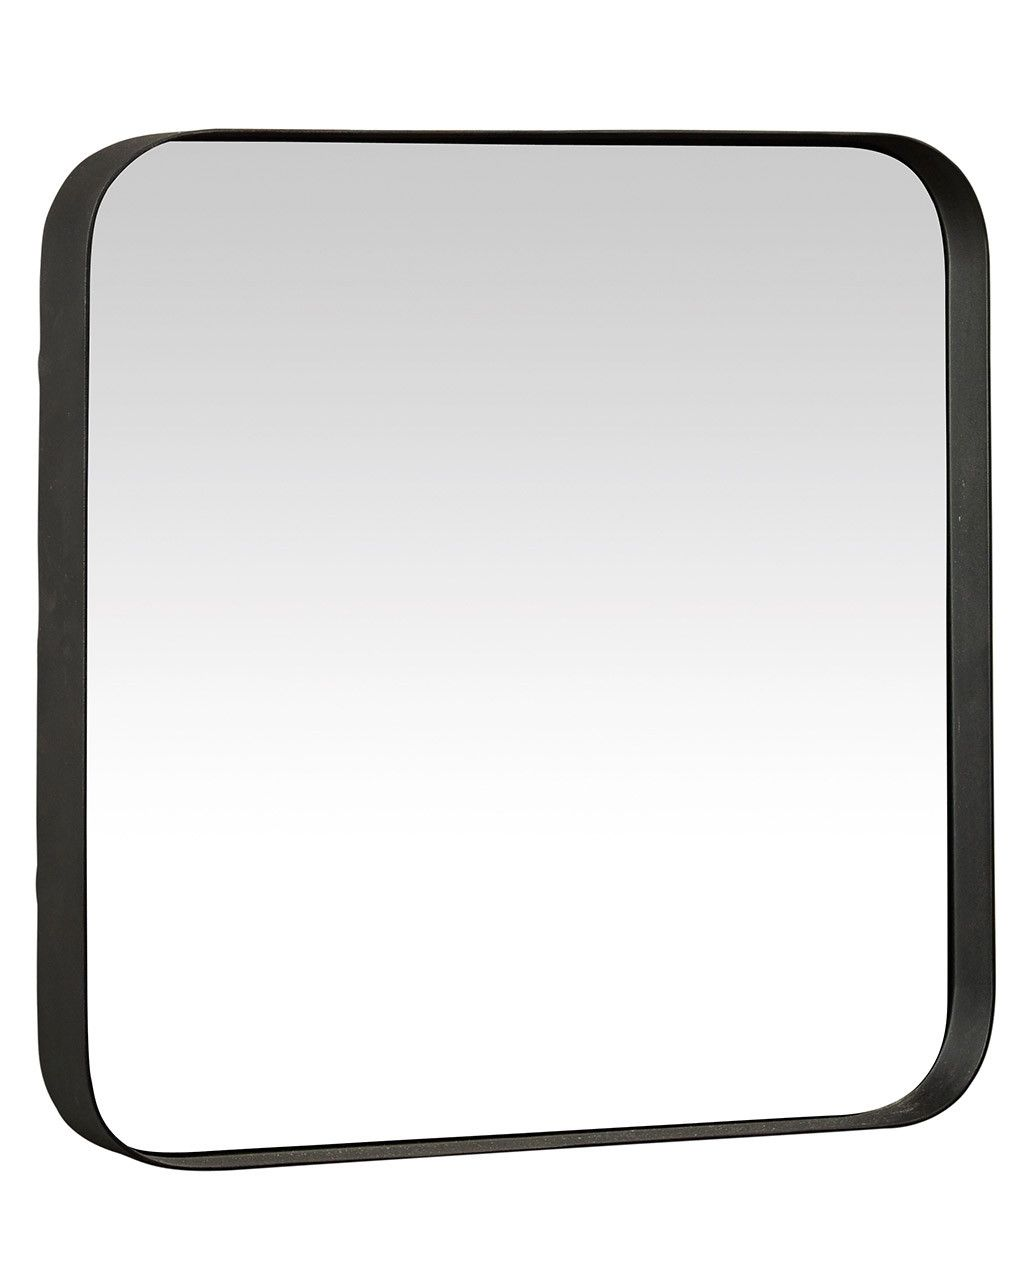 Mirrordeco Kelly Square Mirror With Black Frame Medium H 40cm Black Mirror Frame Black Wall Mirror Mirror Wall